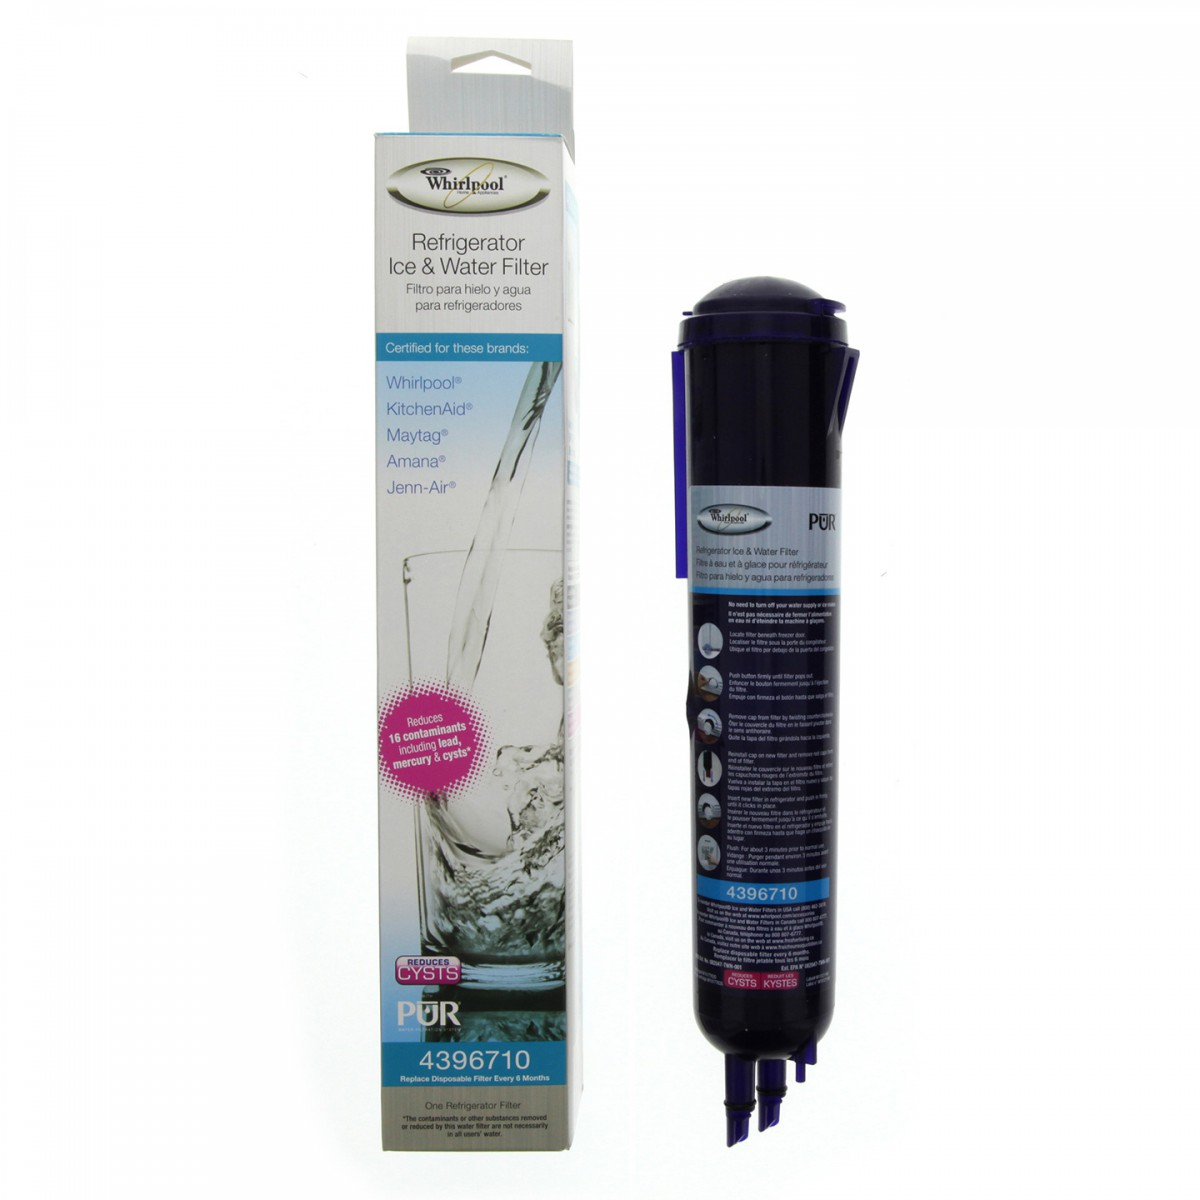 4396710 Whirlpool Refrigerator Water Filter